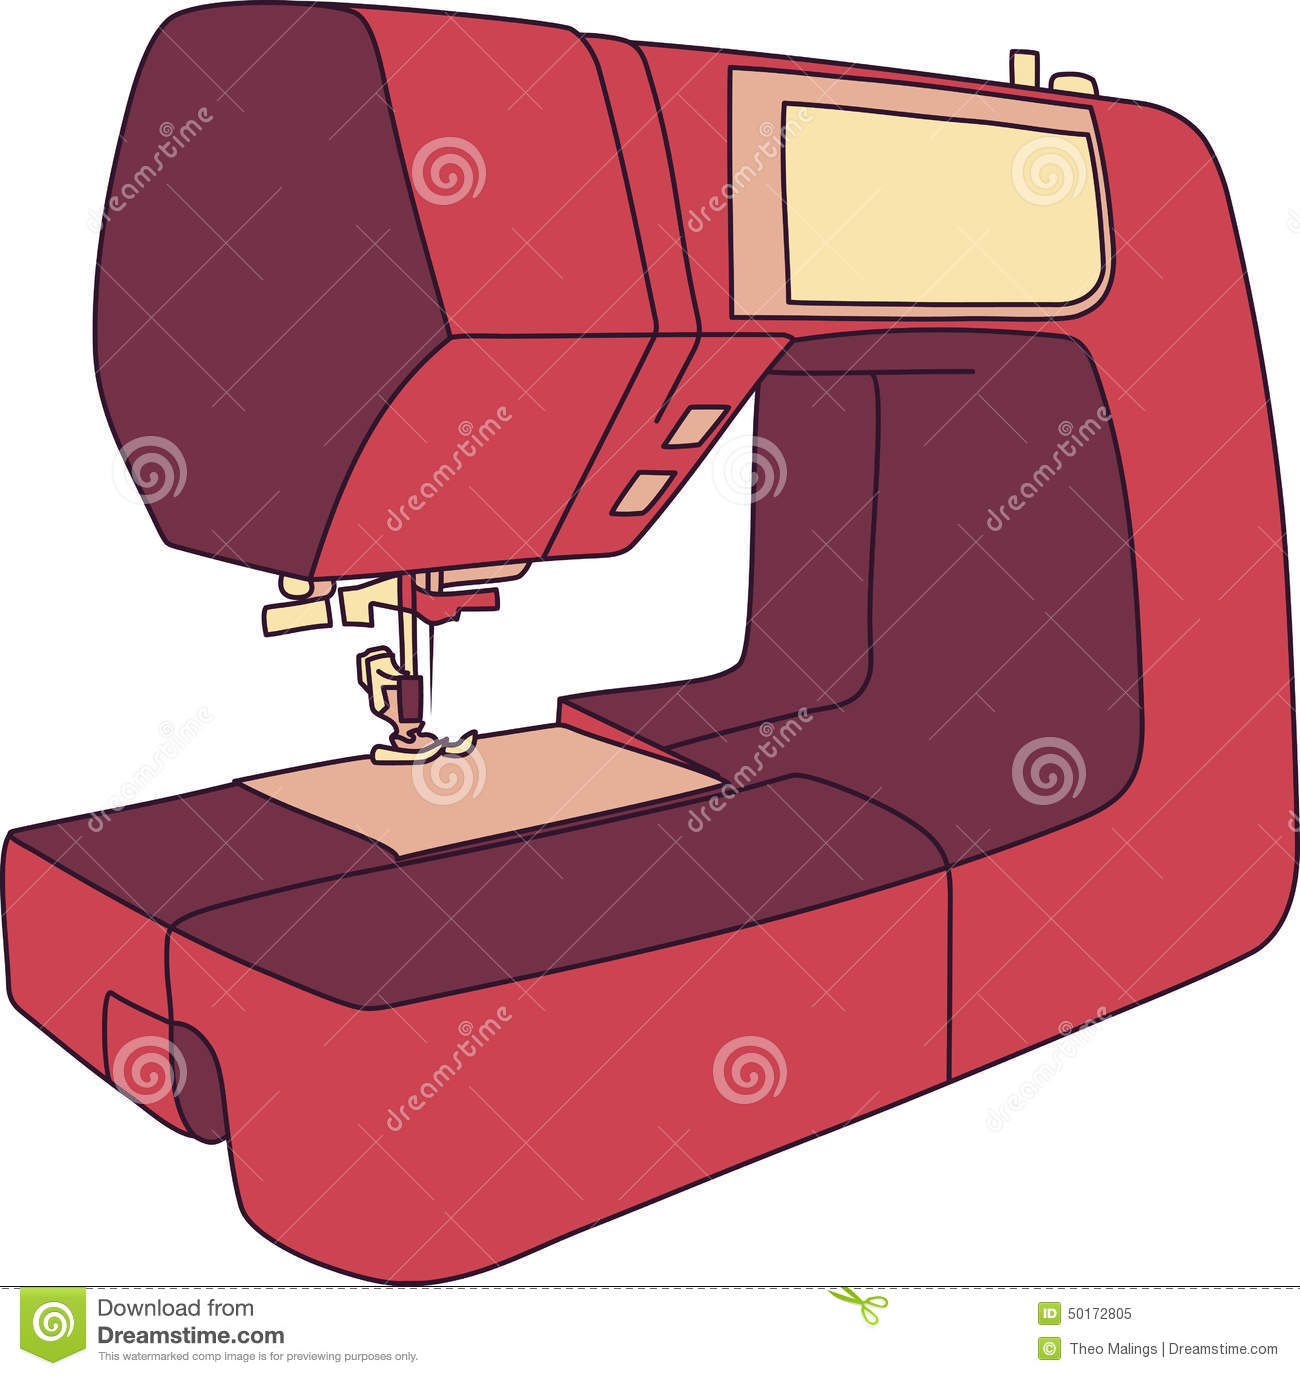 Machine coudre de bande dessin e illustration de vecteur - Machine a coudre dessin ...